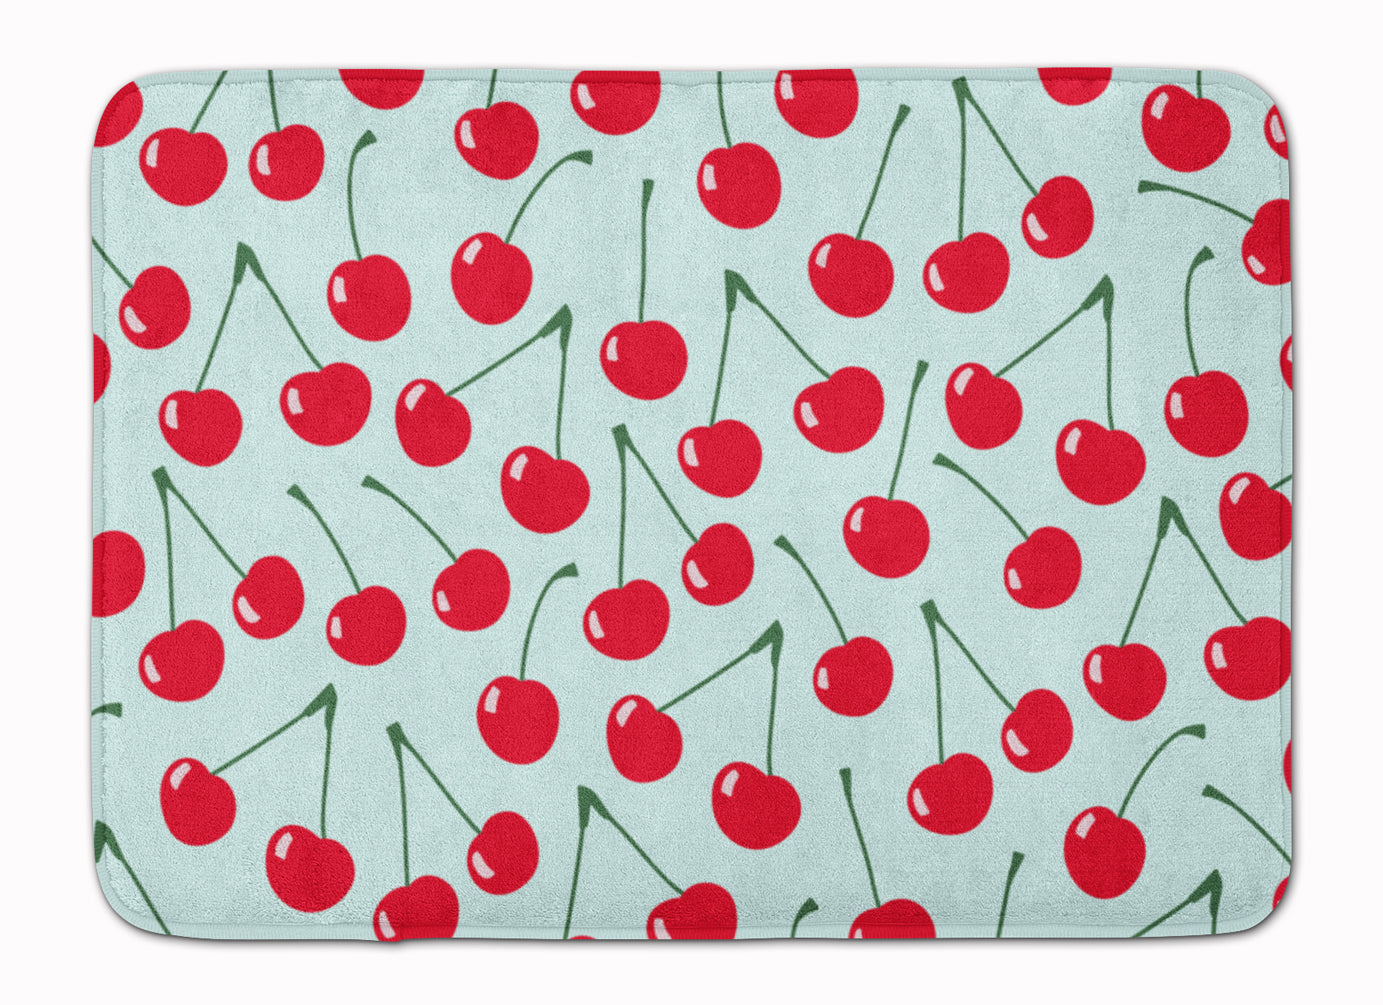 Cherries on Blue Machine Washable Memory Foam Mat BB5148RUG by Caroline's Treasures